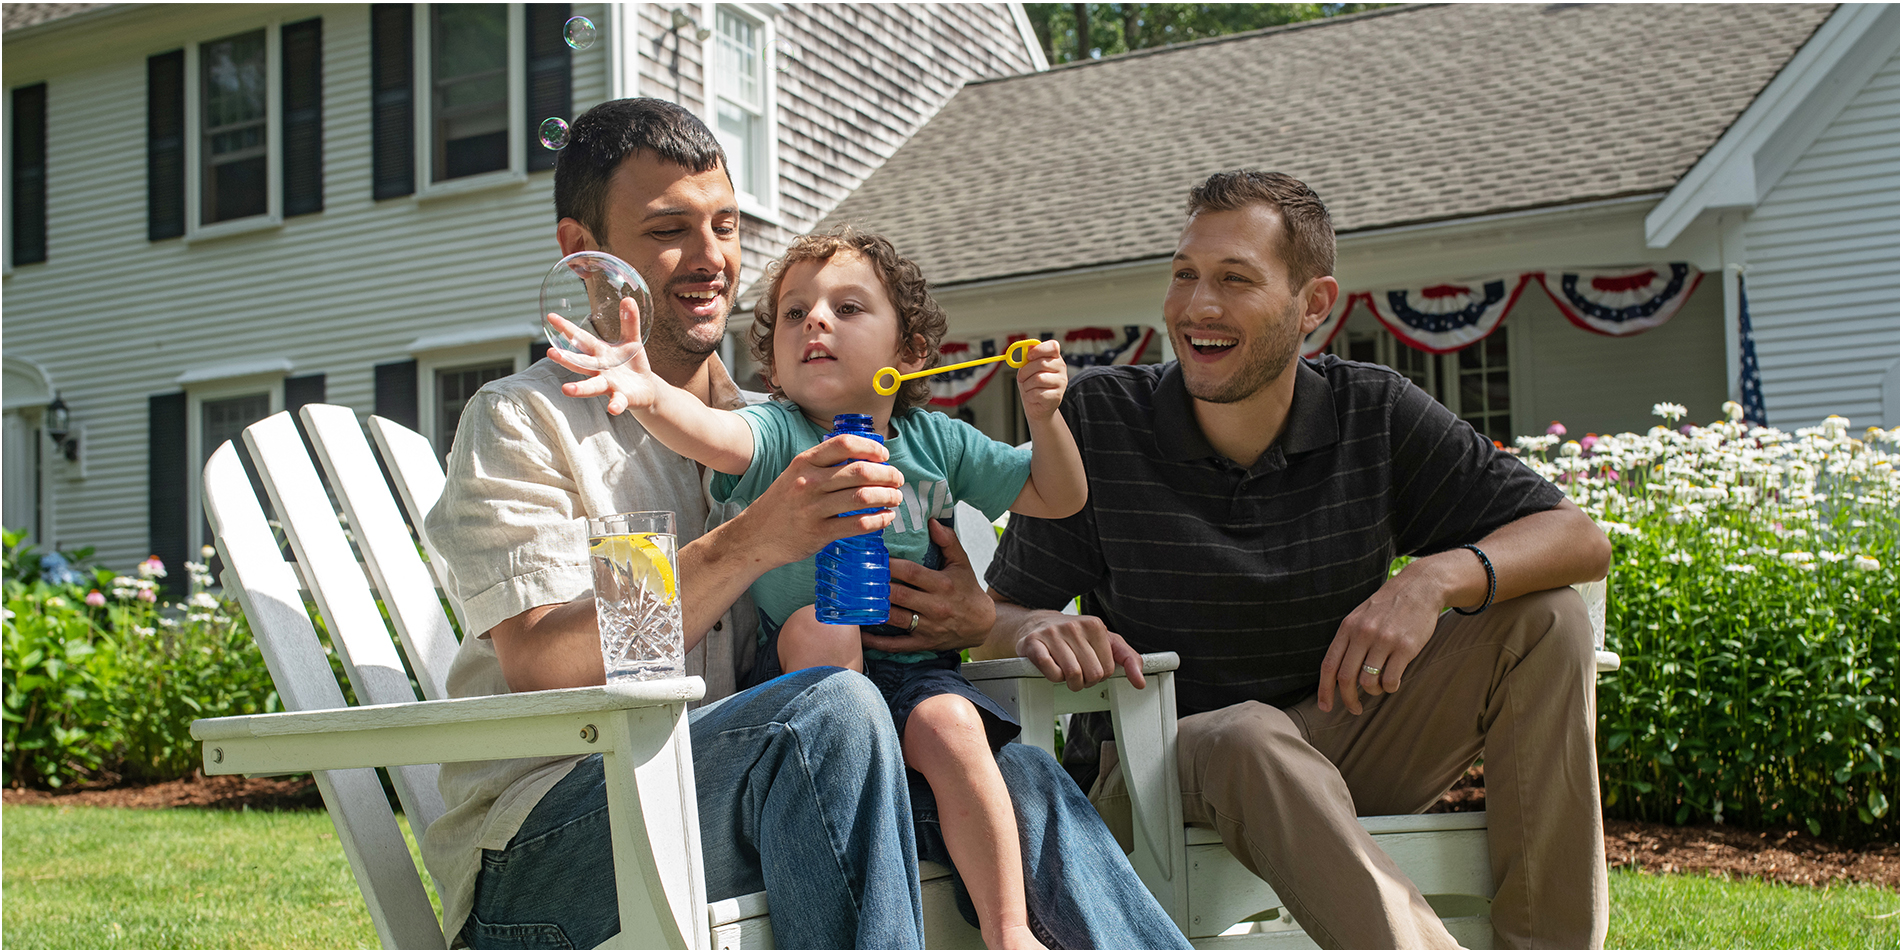 Two fathers sitting in white adirondack chairs outside with their son playing with bubbles